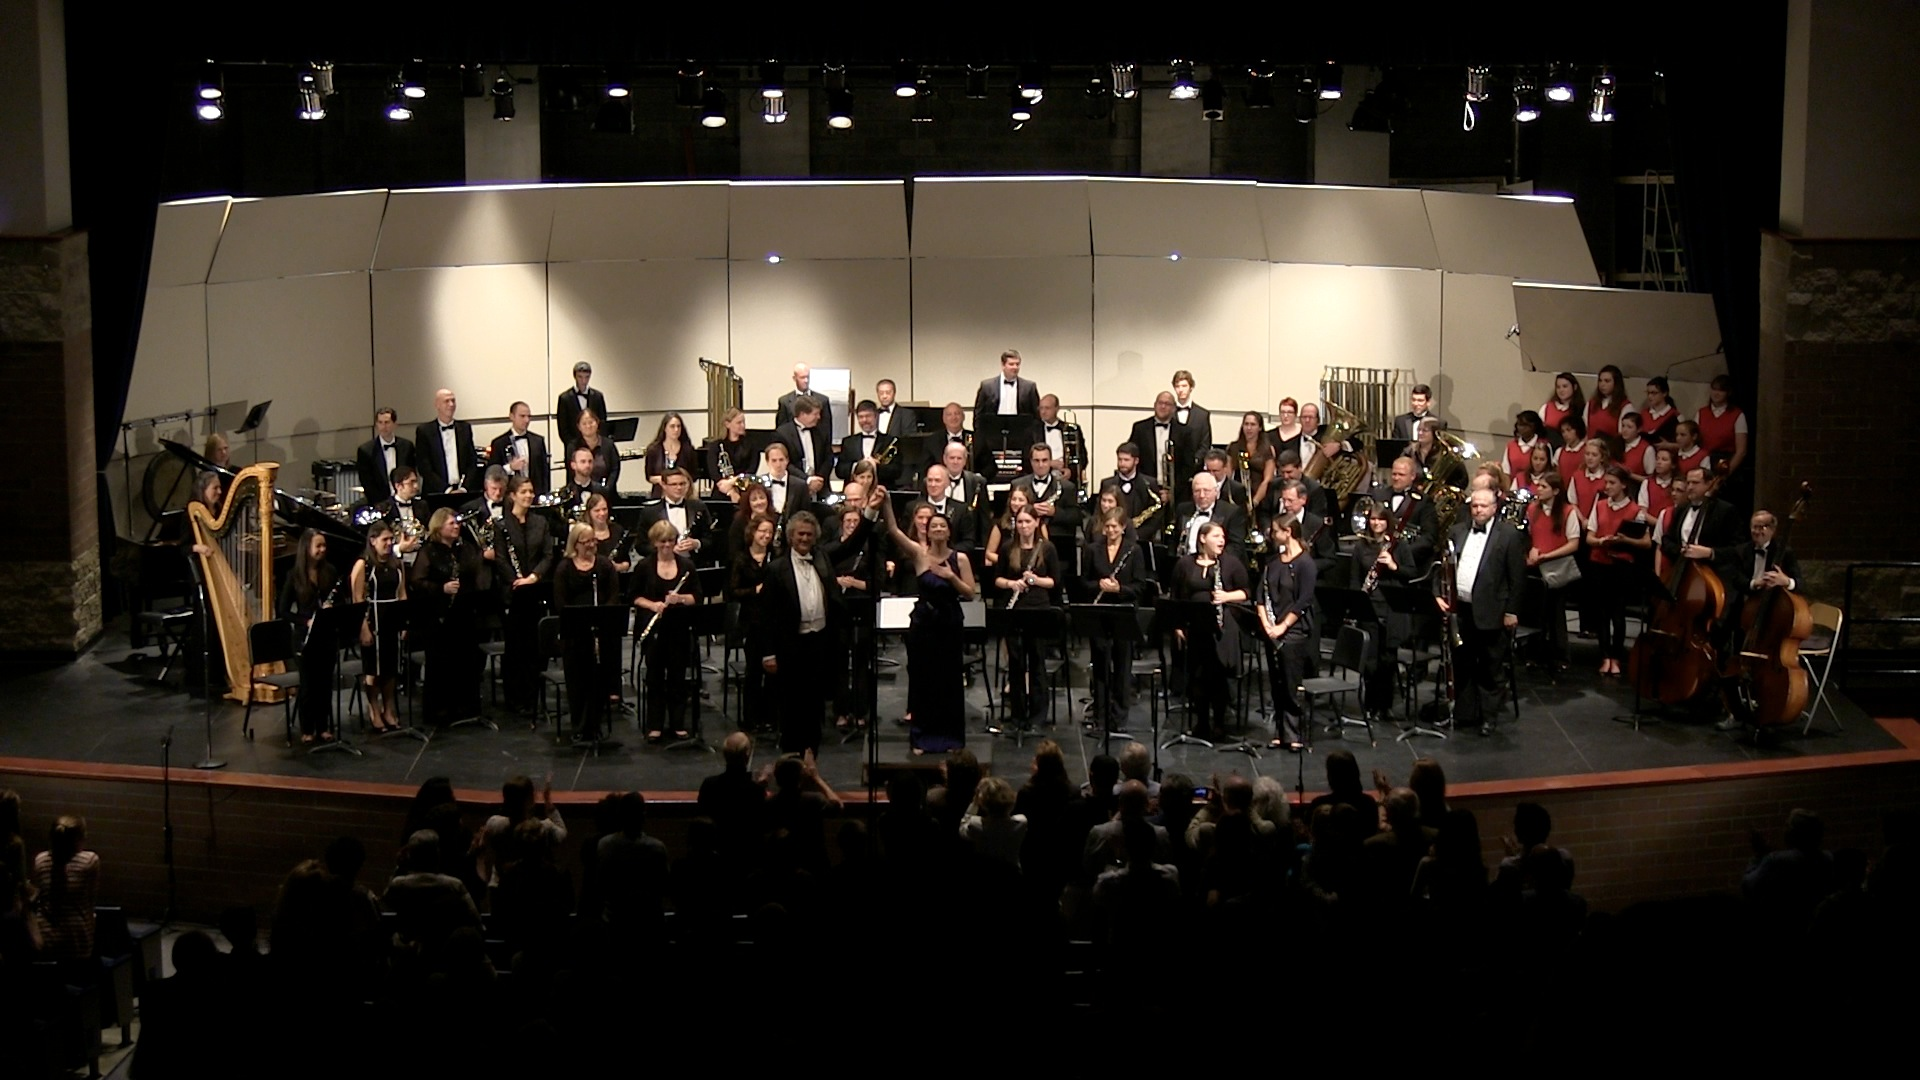 About the New York Wind Symphony